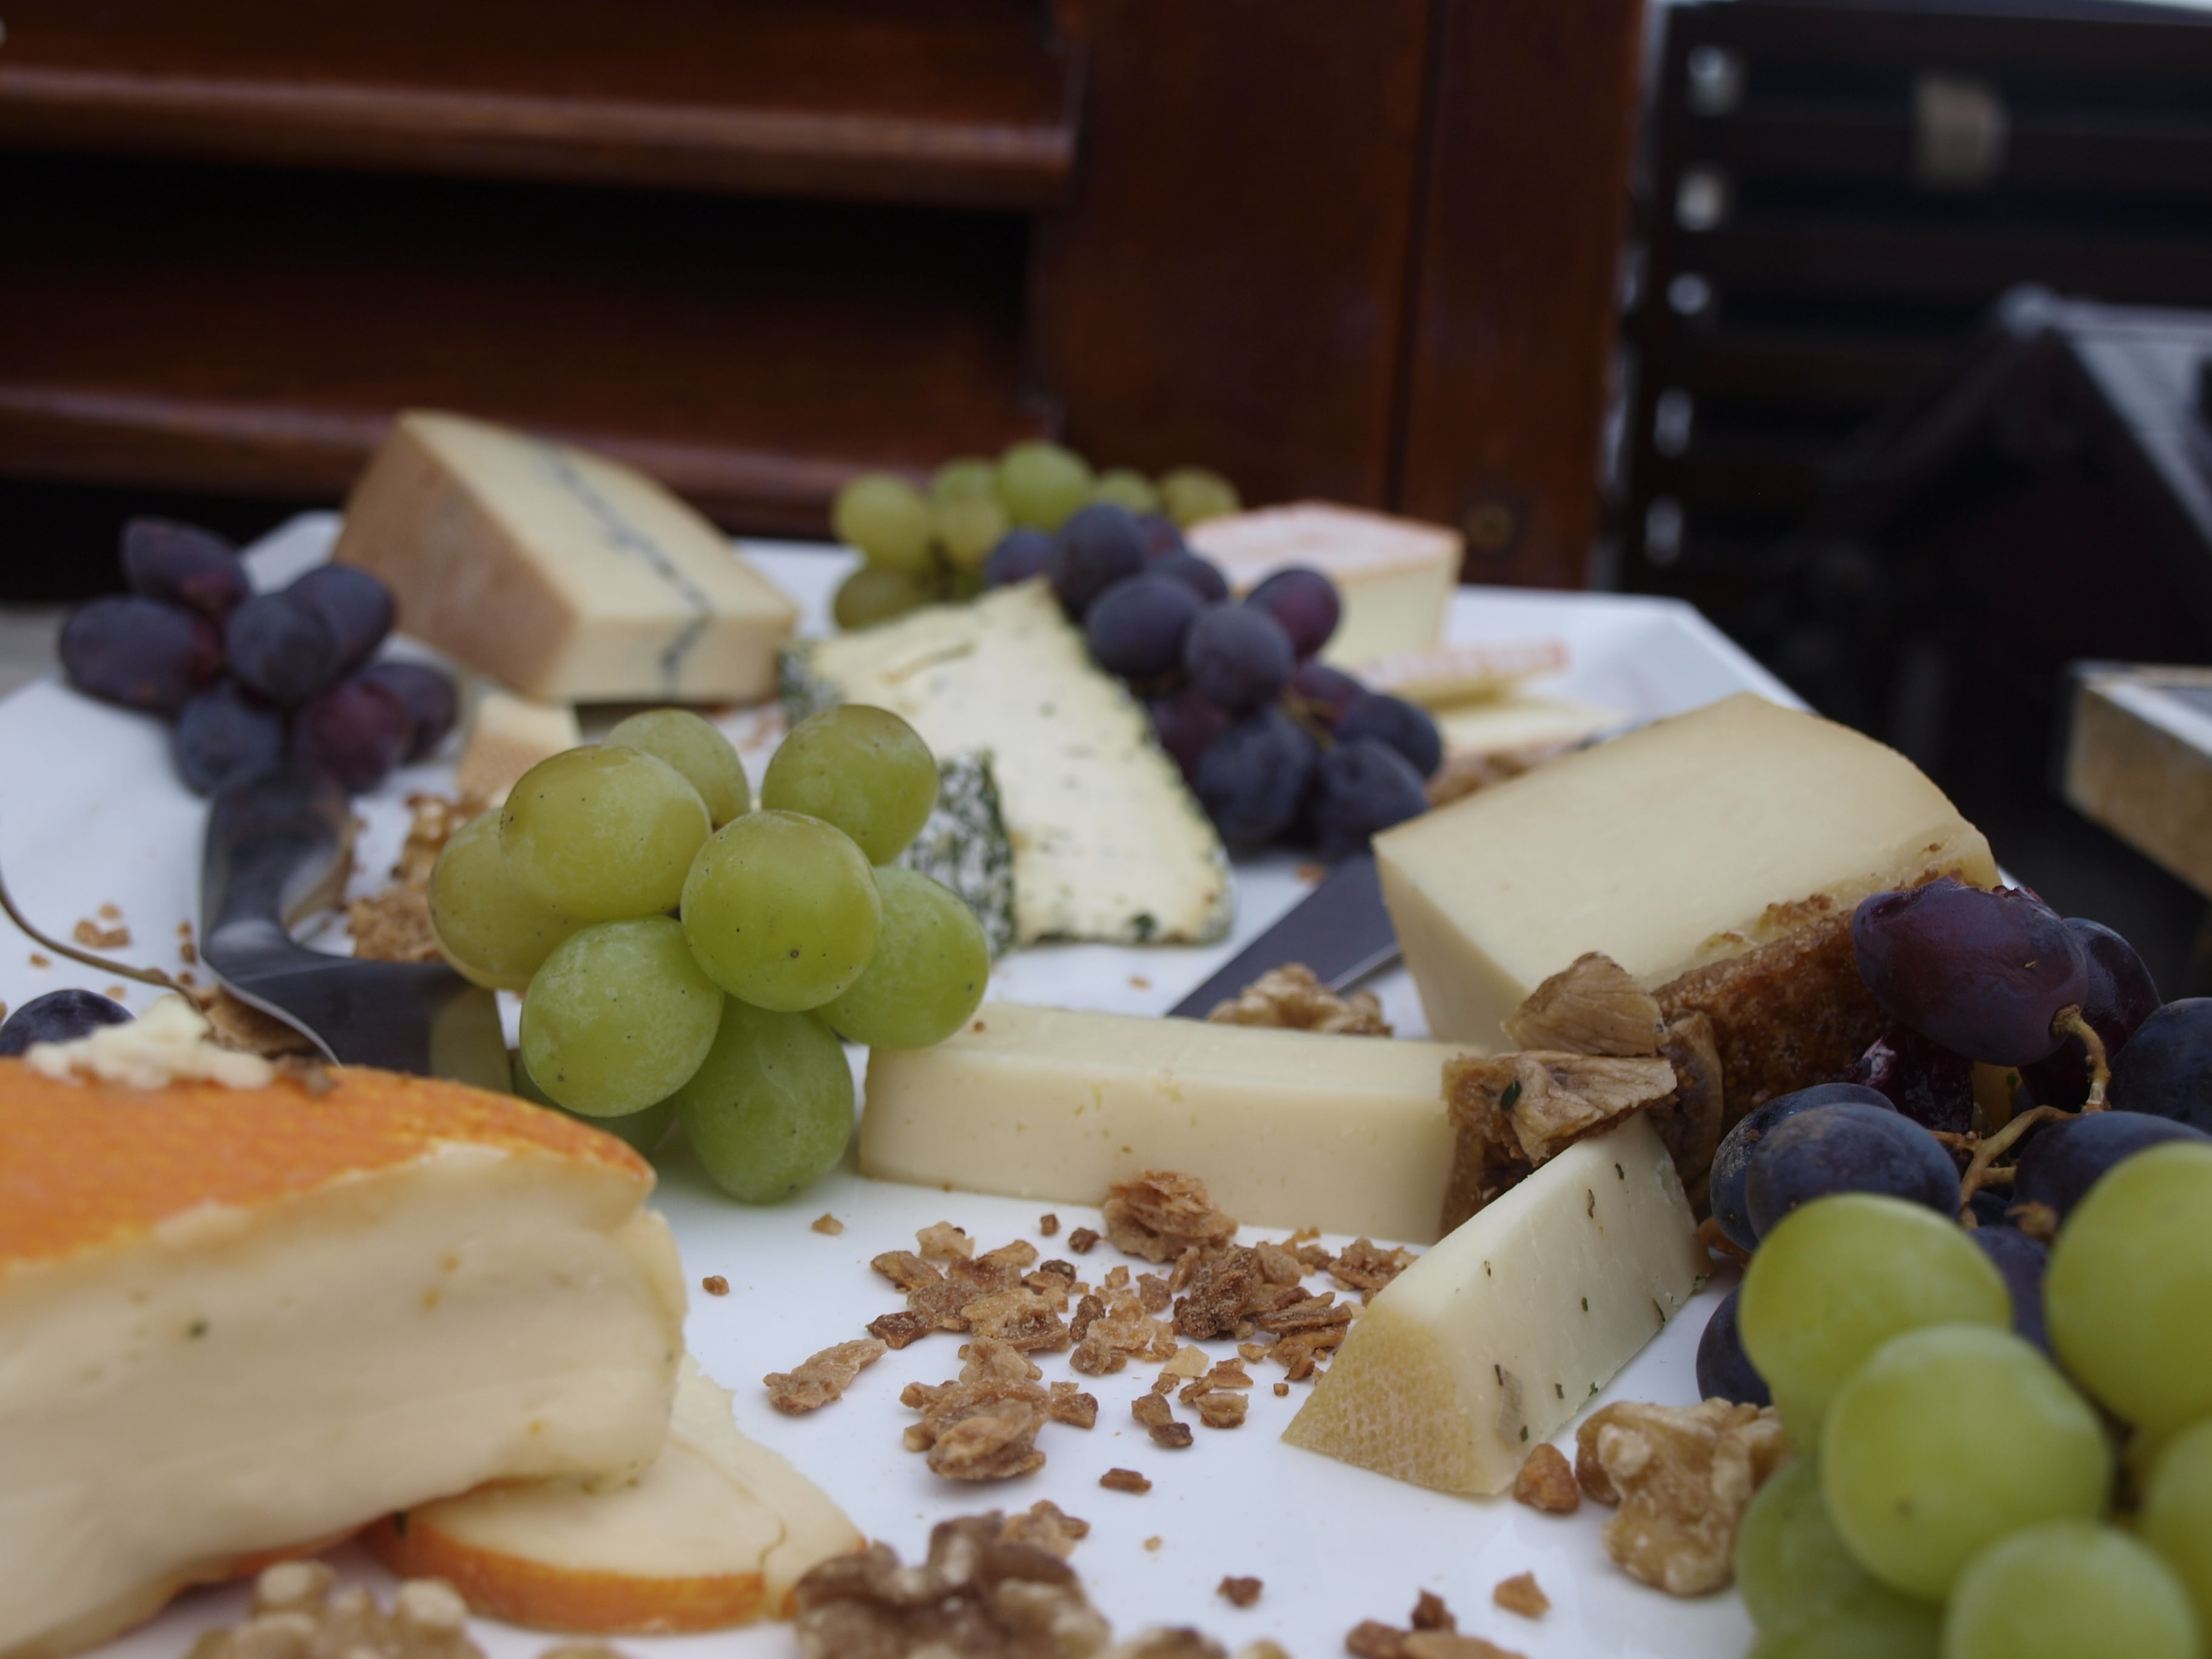 Ending the day with this delicious cheese board on board of the ship